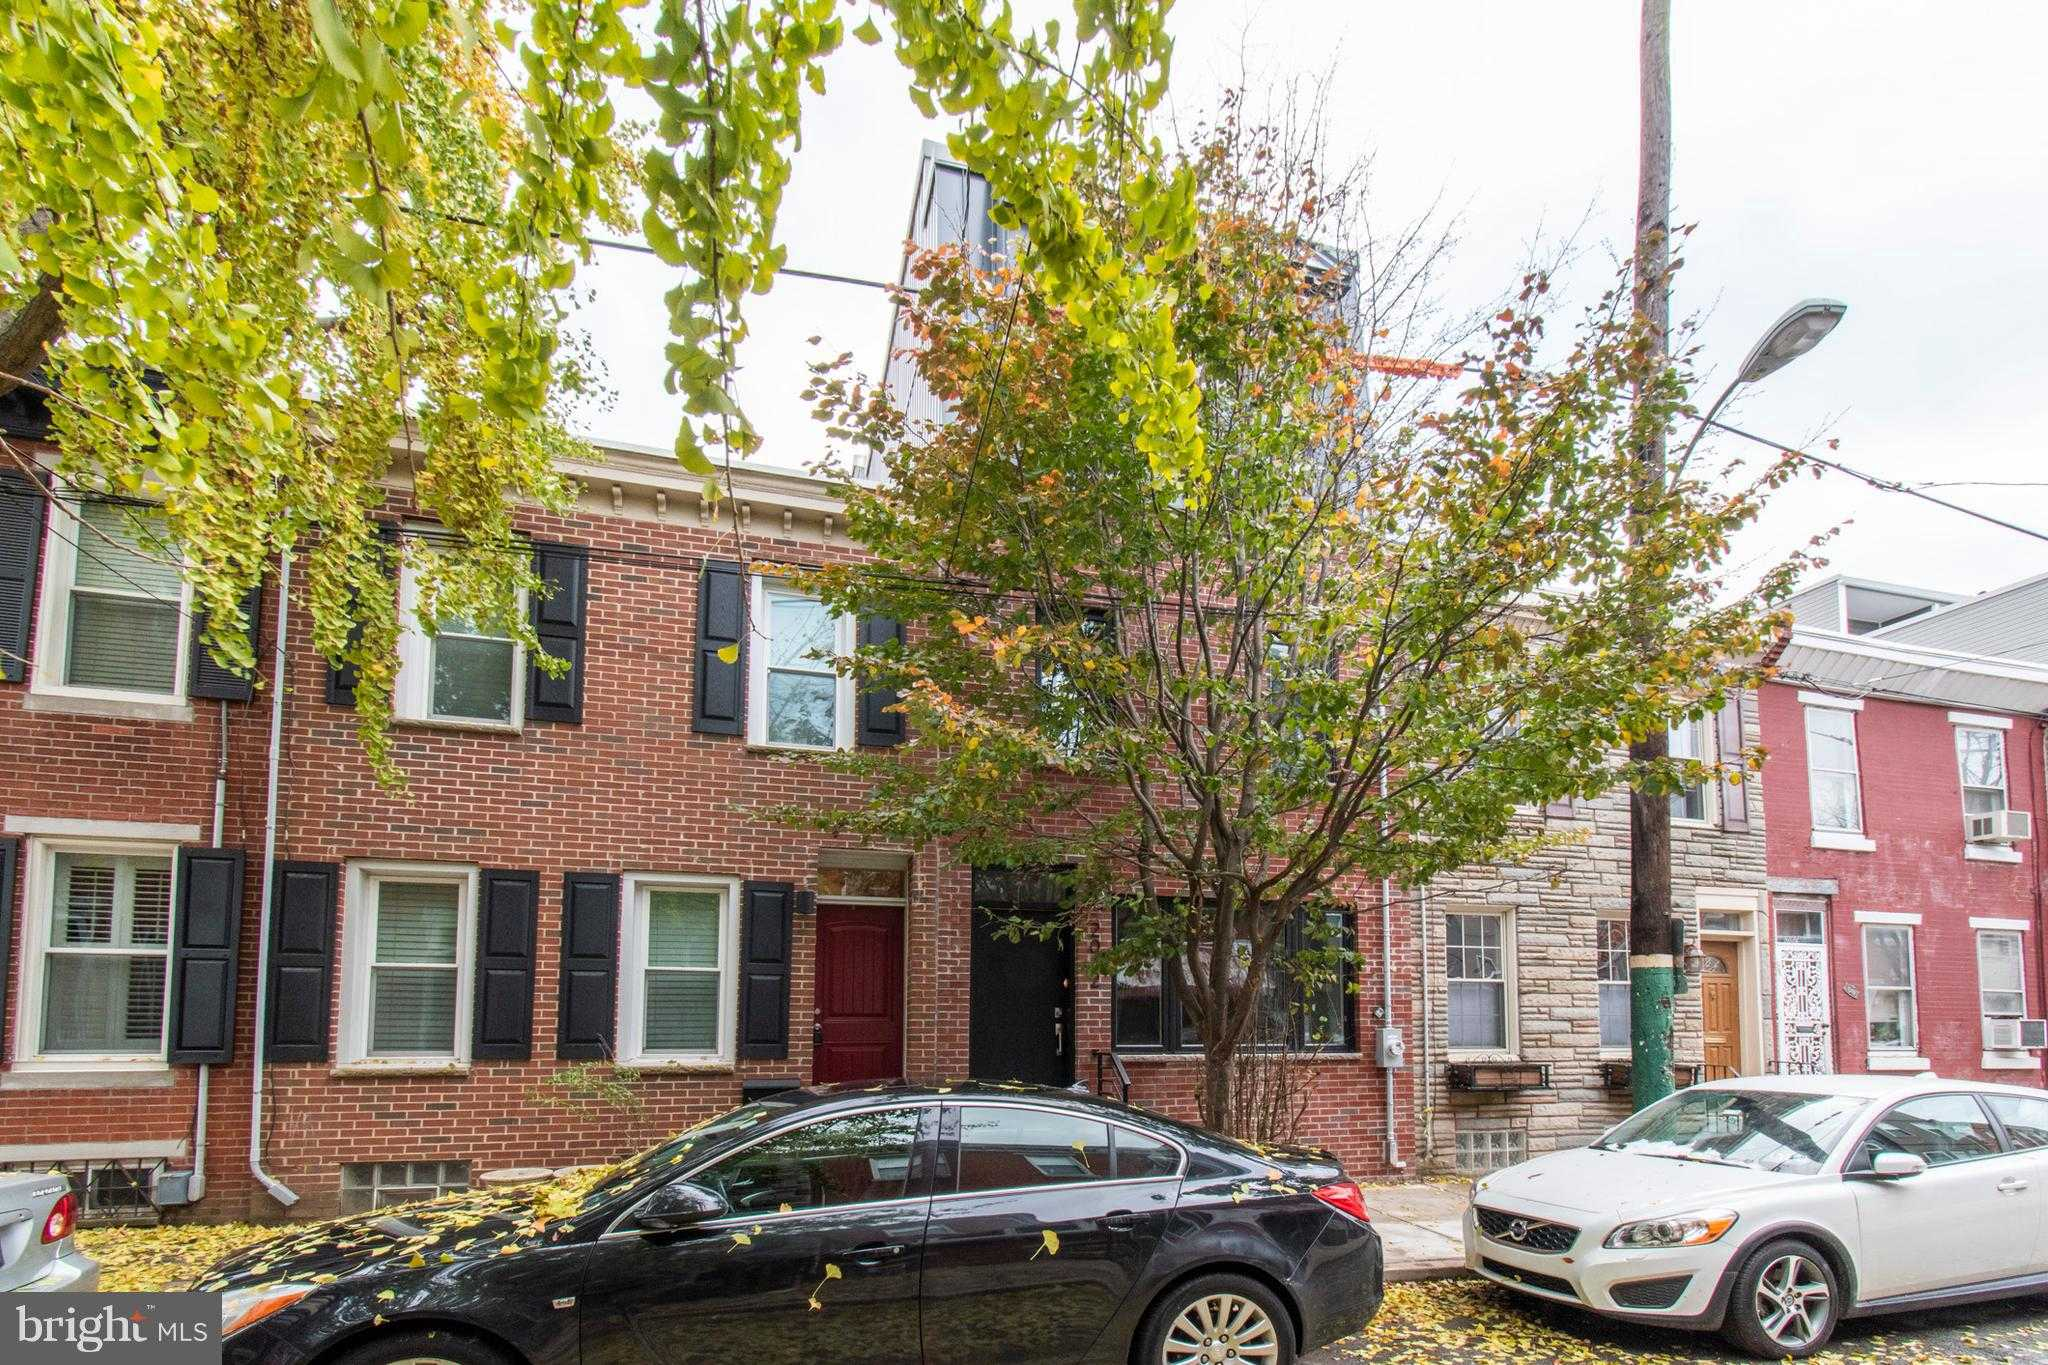 $925,000 - 4Br/3Ba -  for Sale in Graduate Hospital, Philadelphia